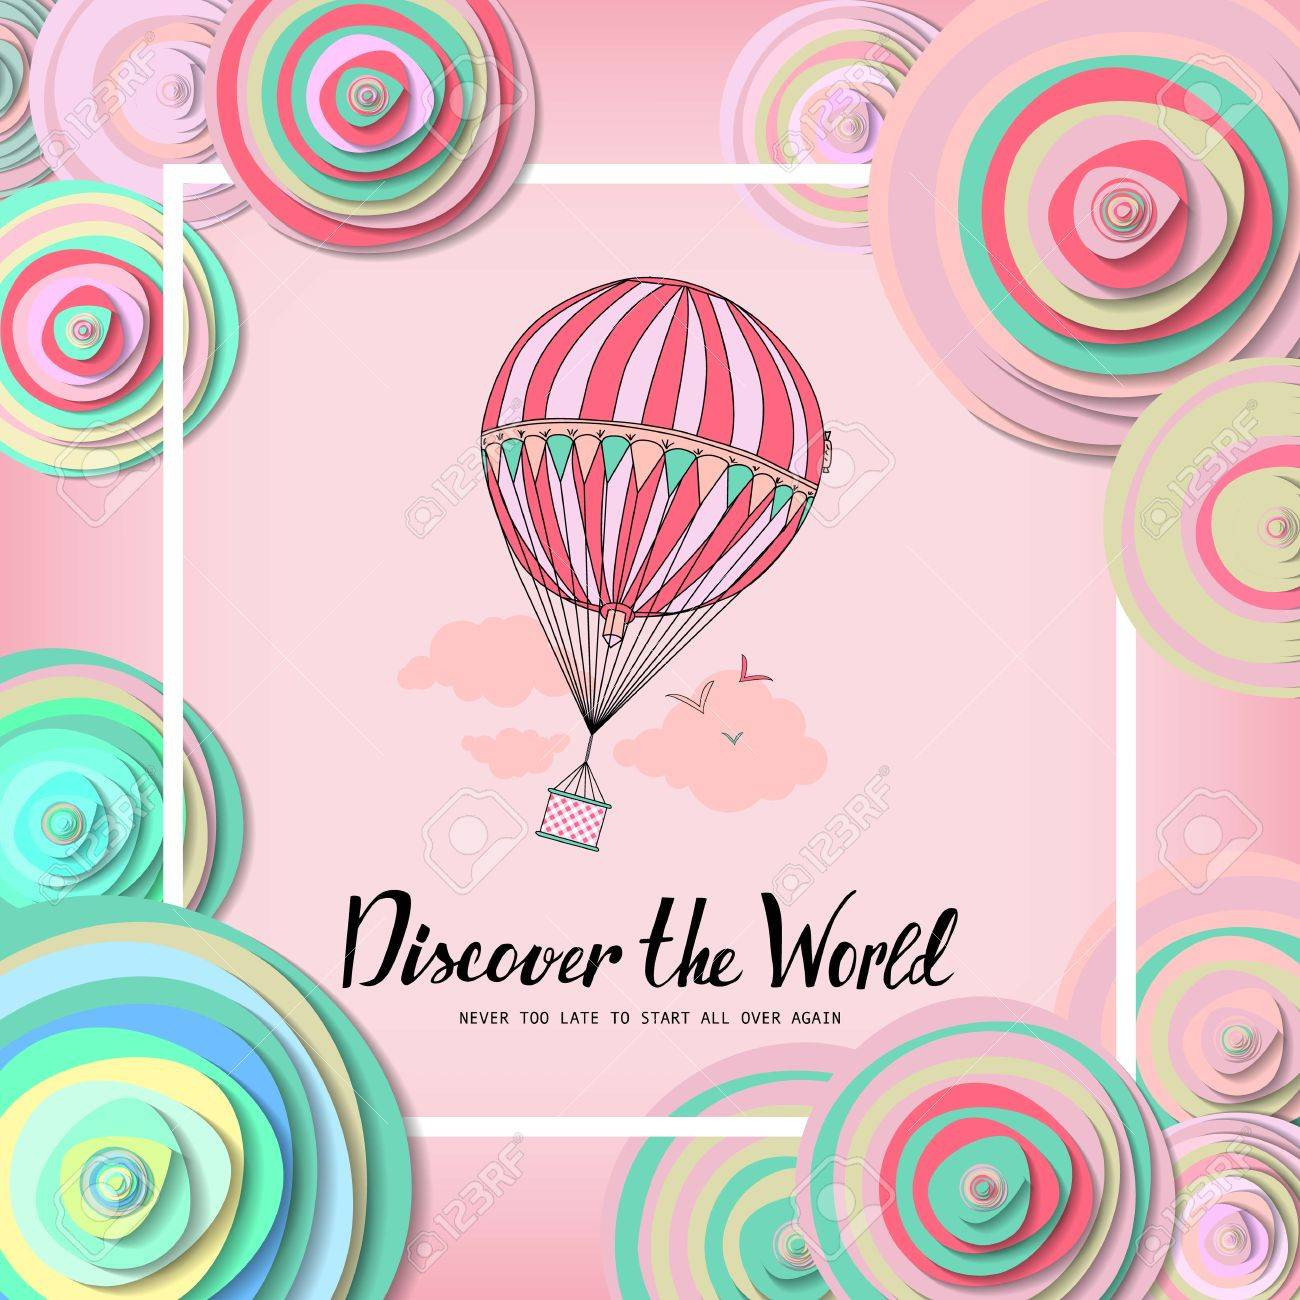 Discover The World Vintage Motivational Postcard With Balloon Wallpaper Flyers Invitation